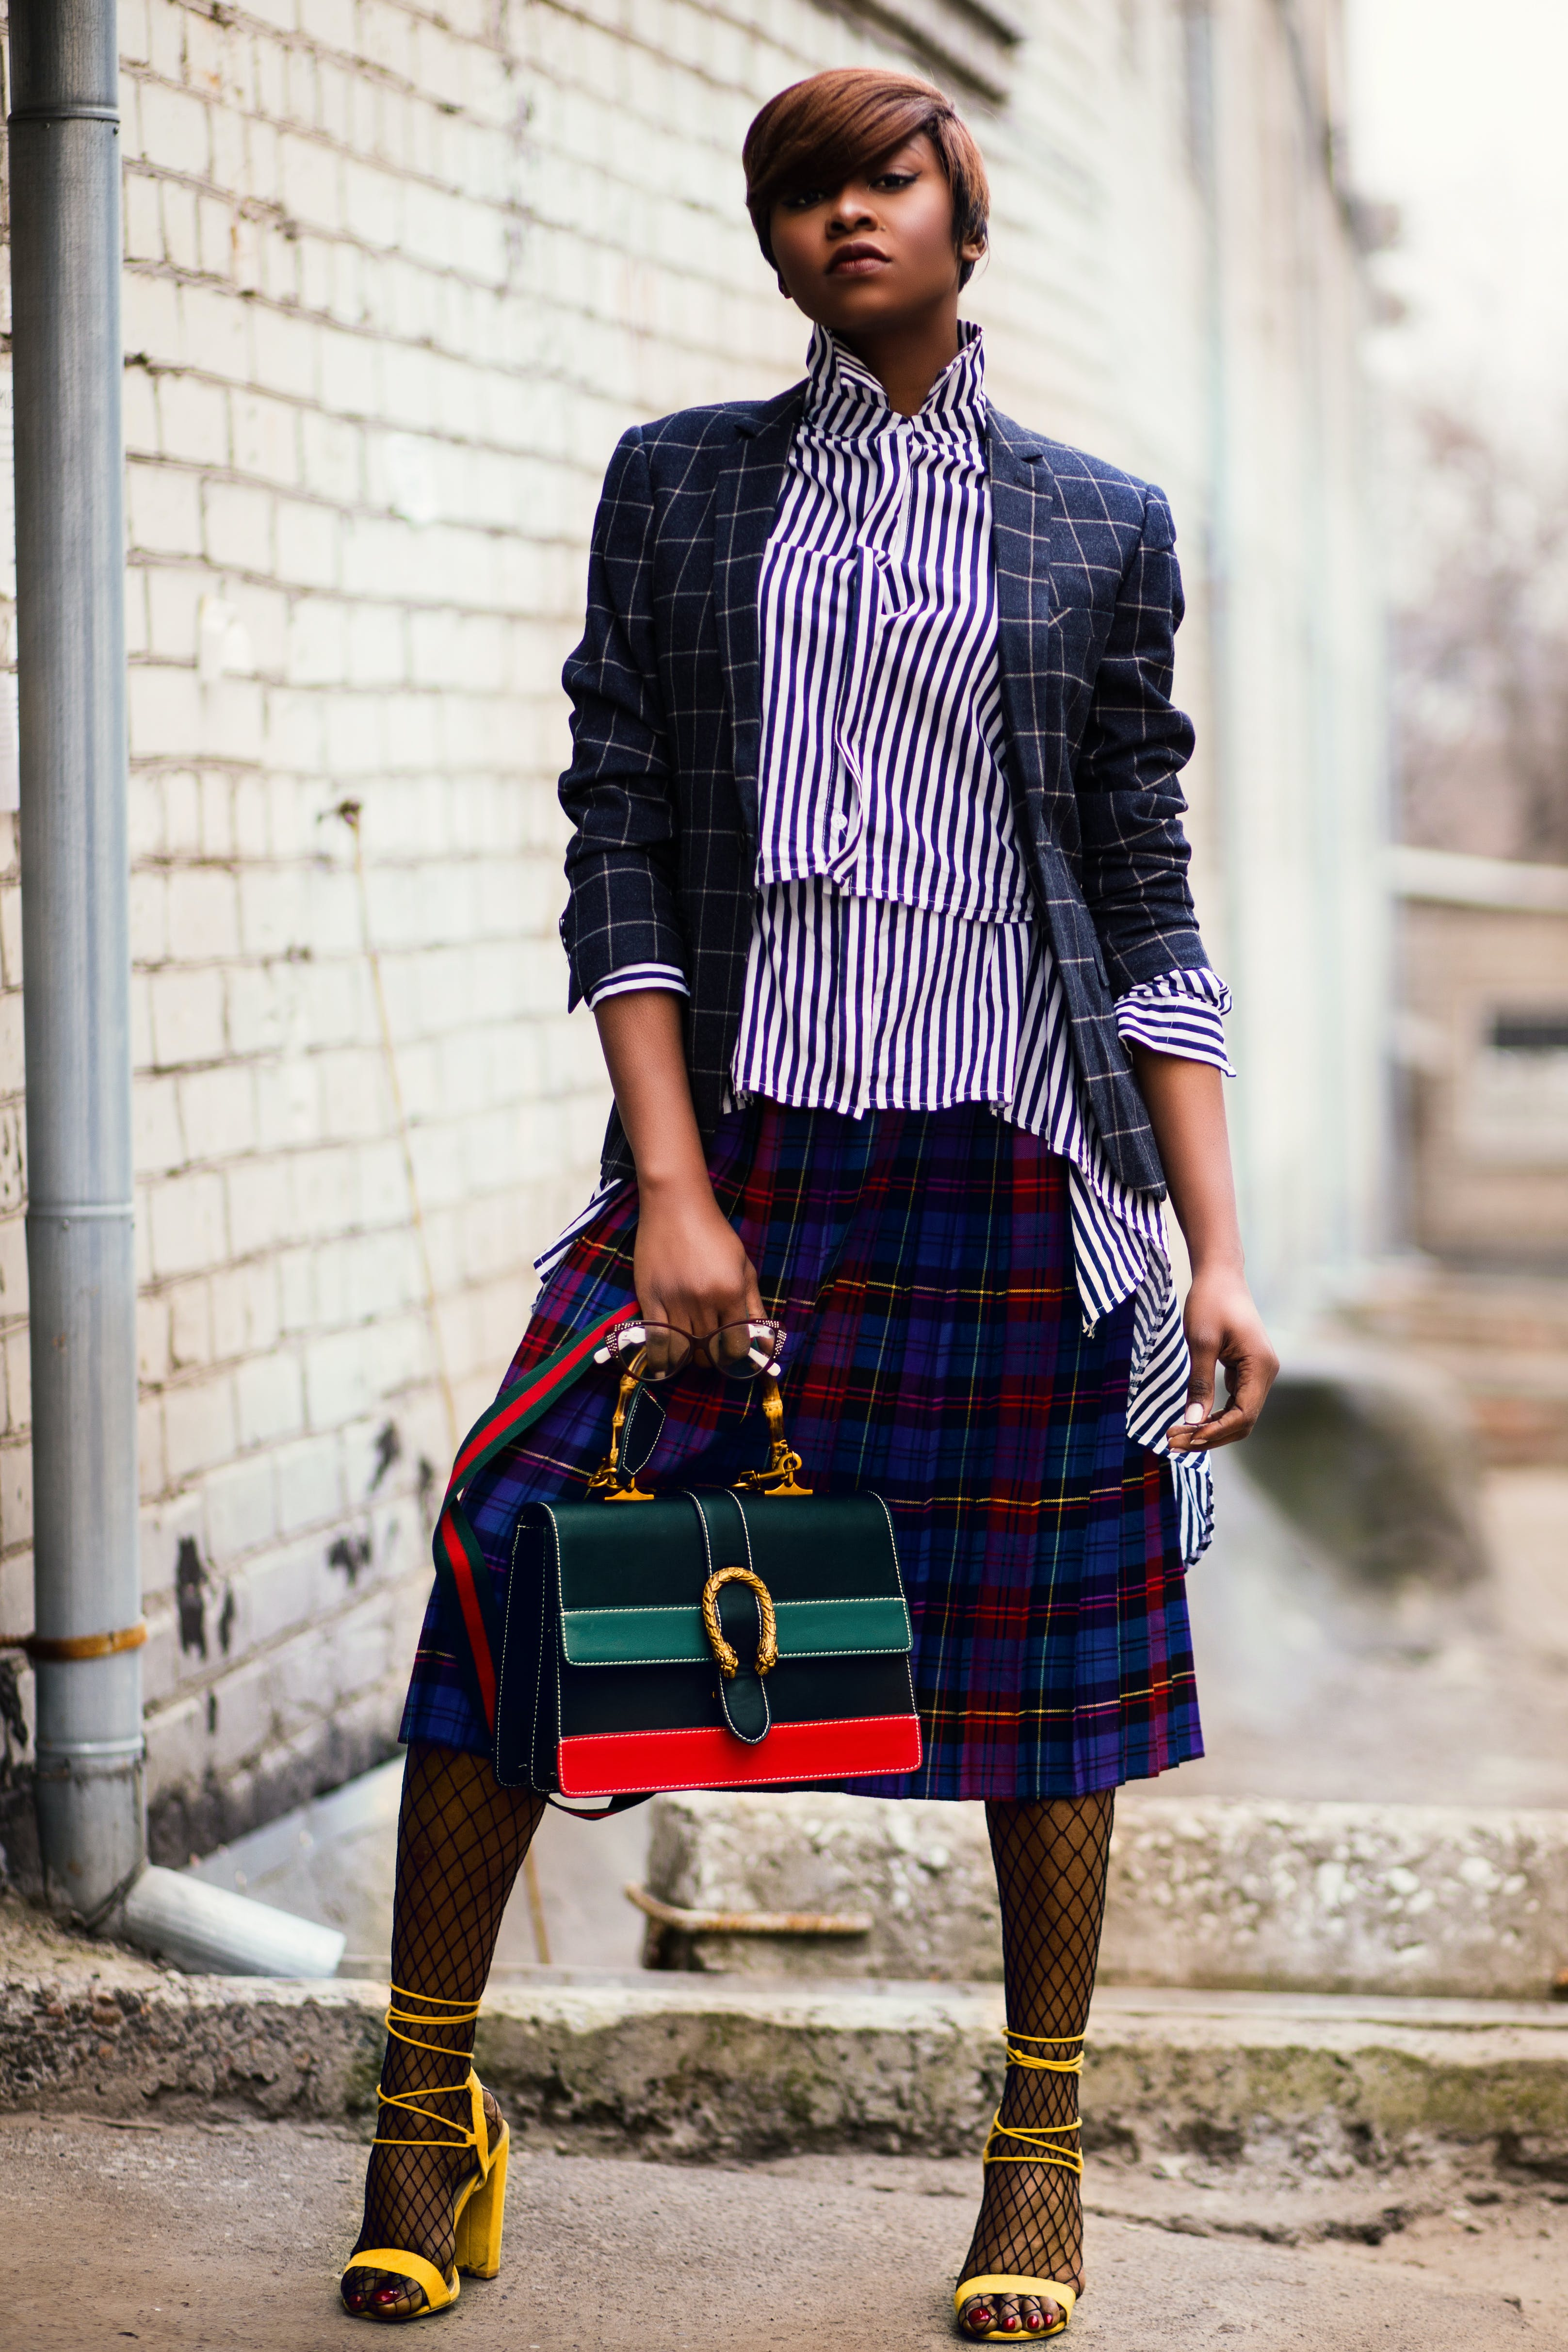 Woman in Blue and White Plaid Cardigan Holding Green and Red Handbag